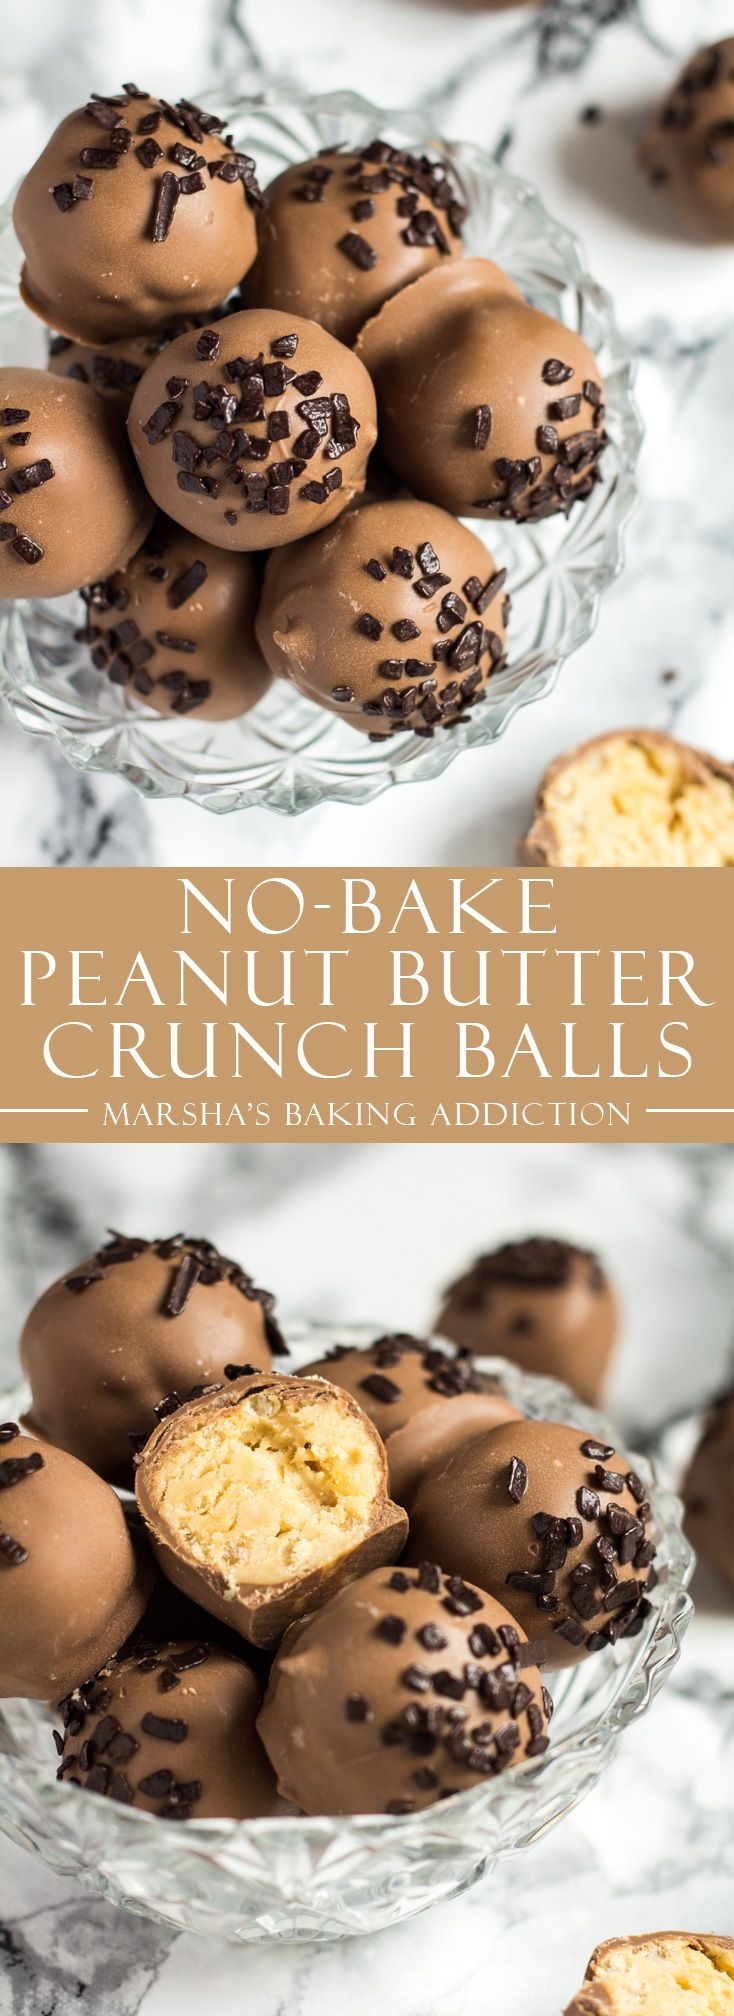 No-Bake Peanut Butter Crunch Balls | marshasbakingaddiction.com @marshasbakeblog